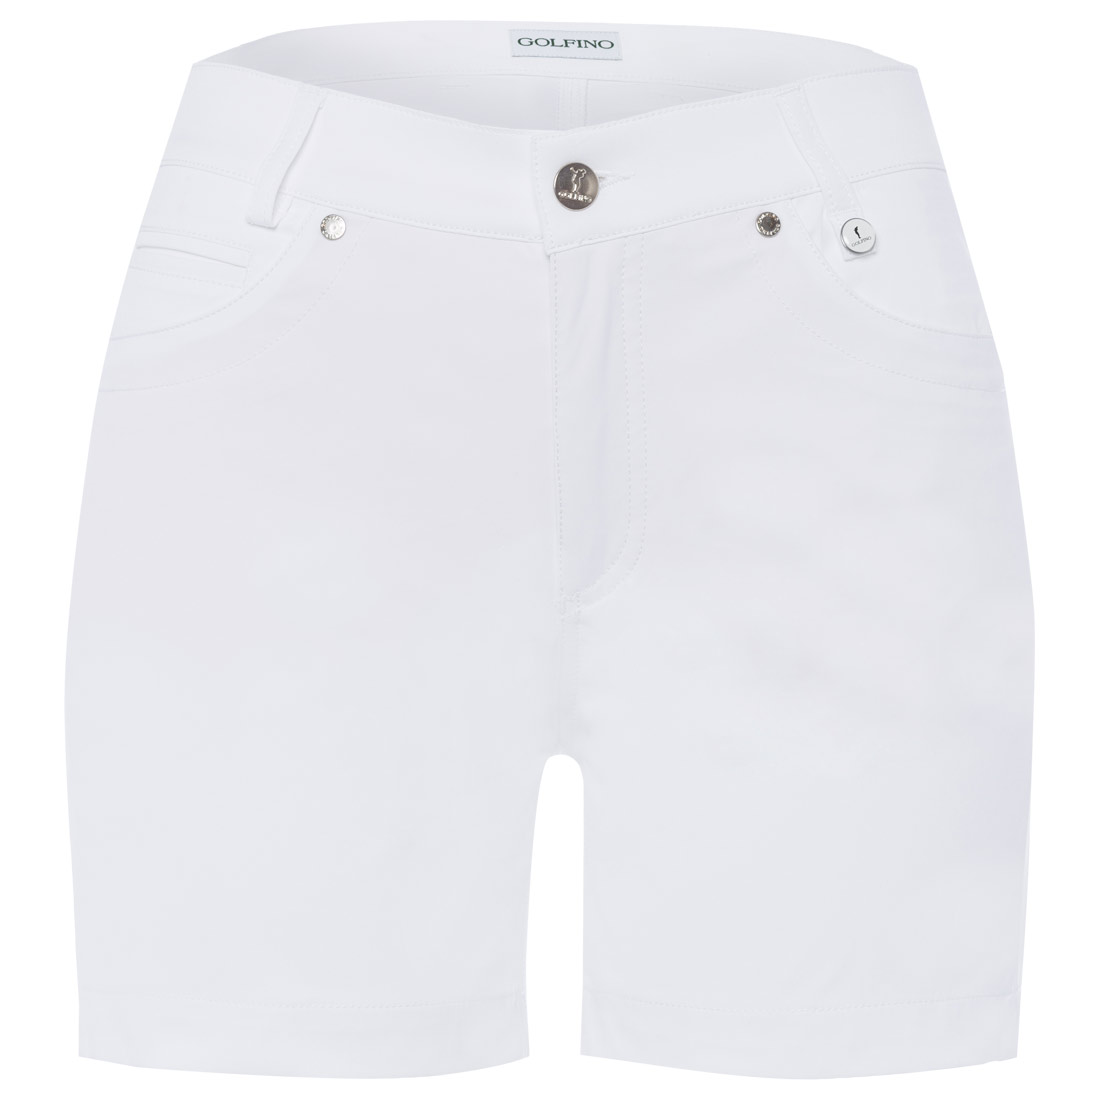 Ladies' golf shorts